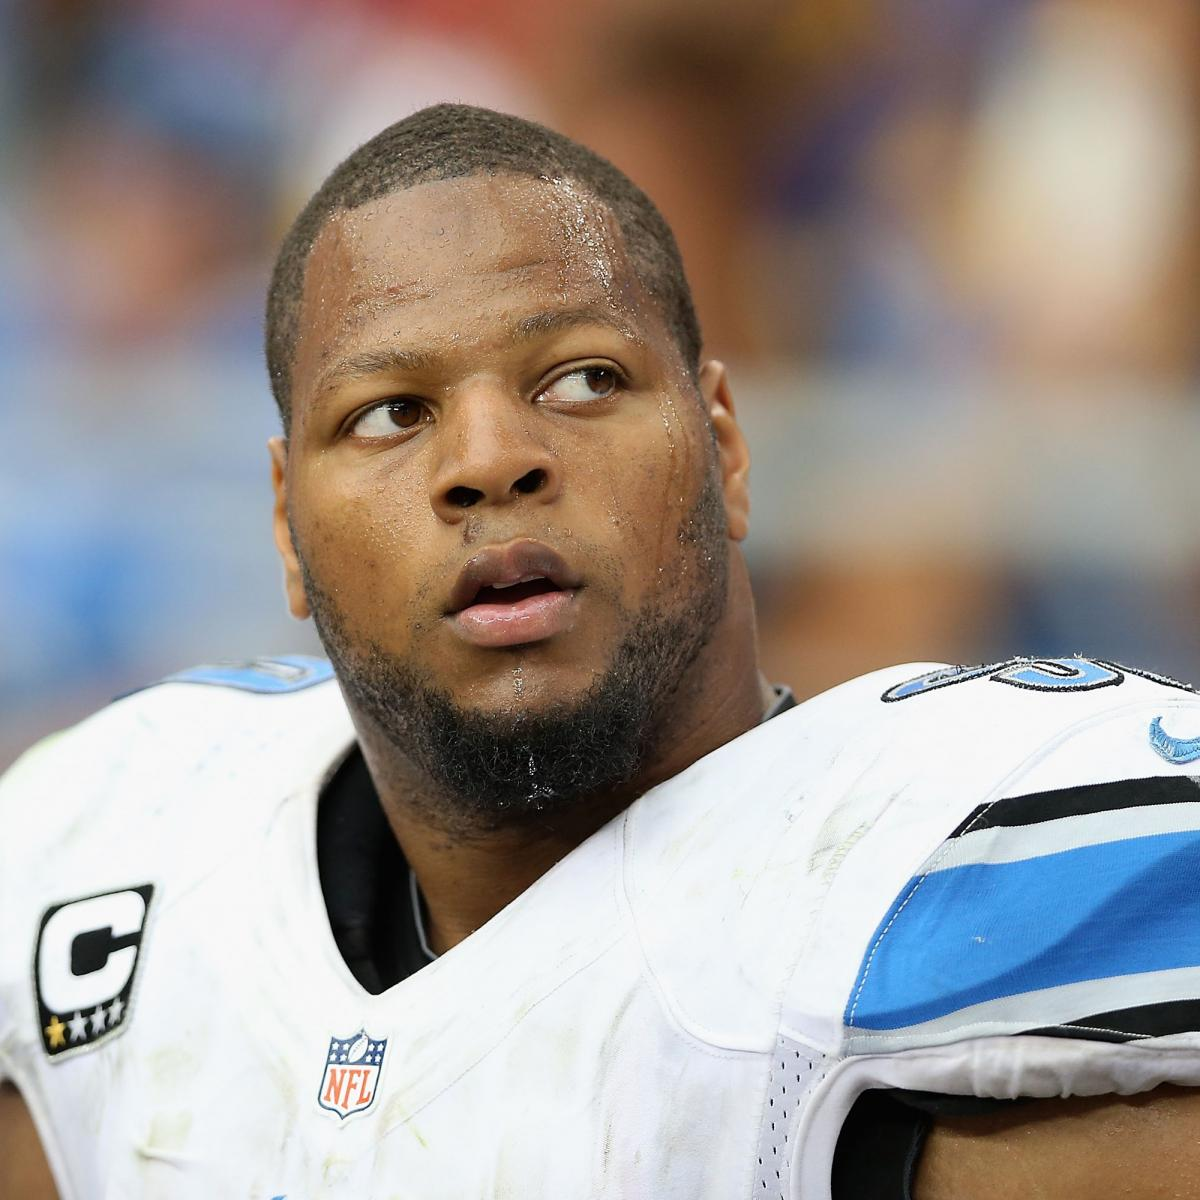 The Raiders Can And Should Sign Ndamukong Suh: Has Ndamukong Suh Become The NFL's Ultimate Villain